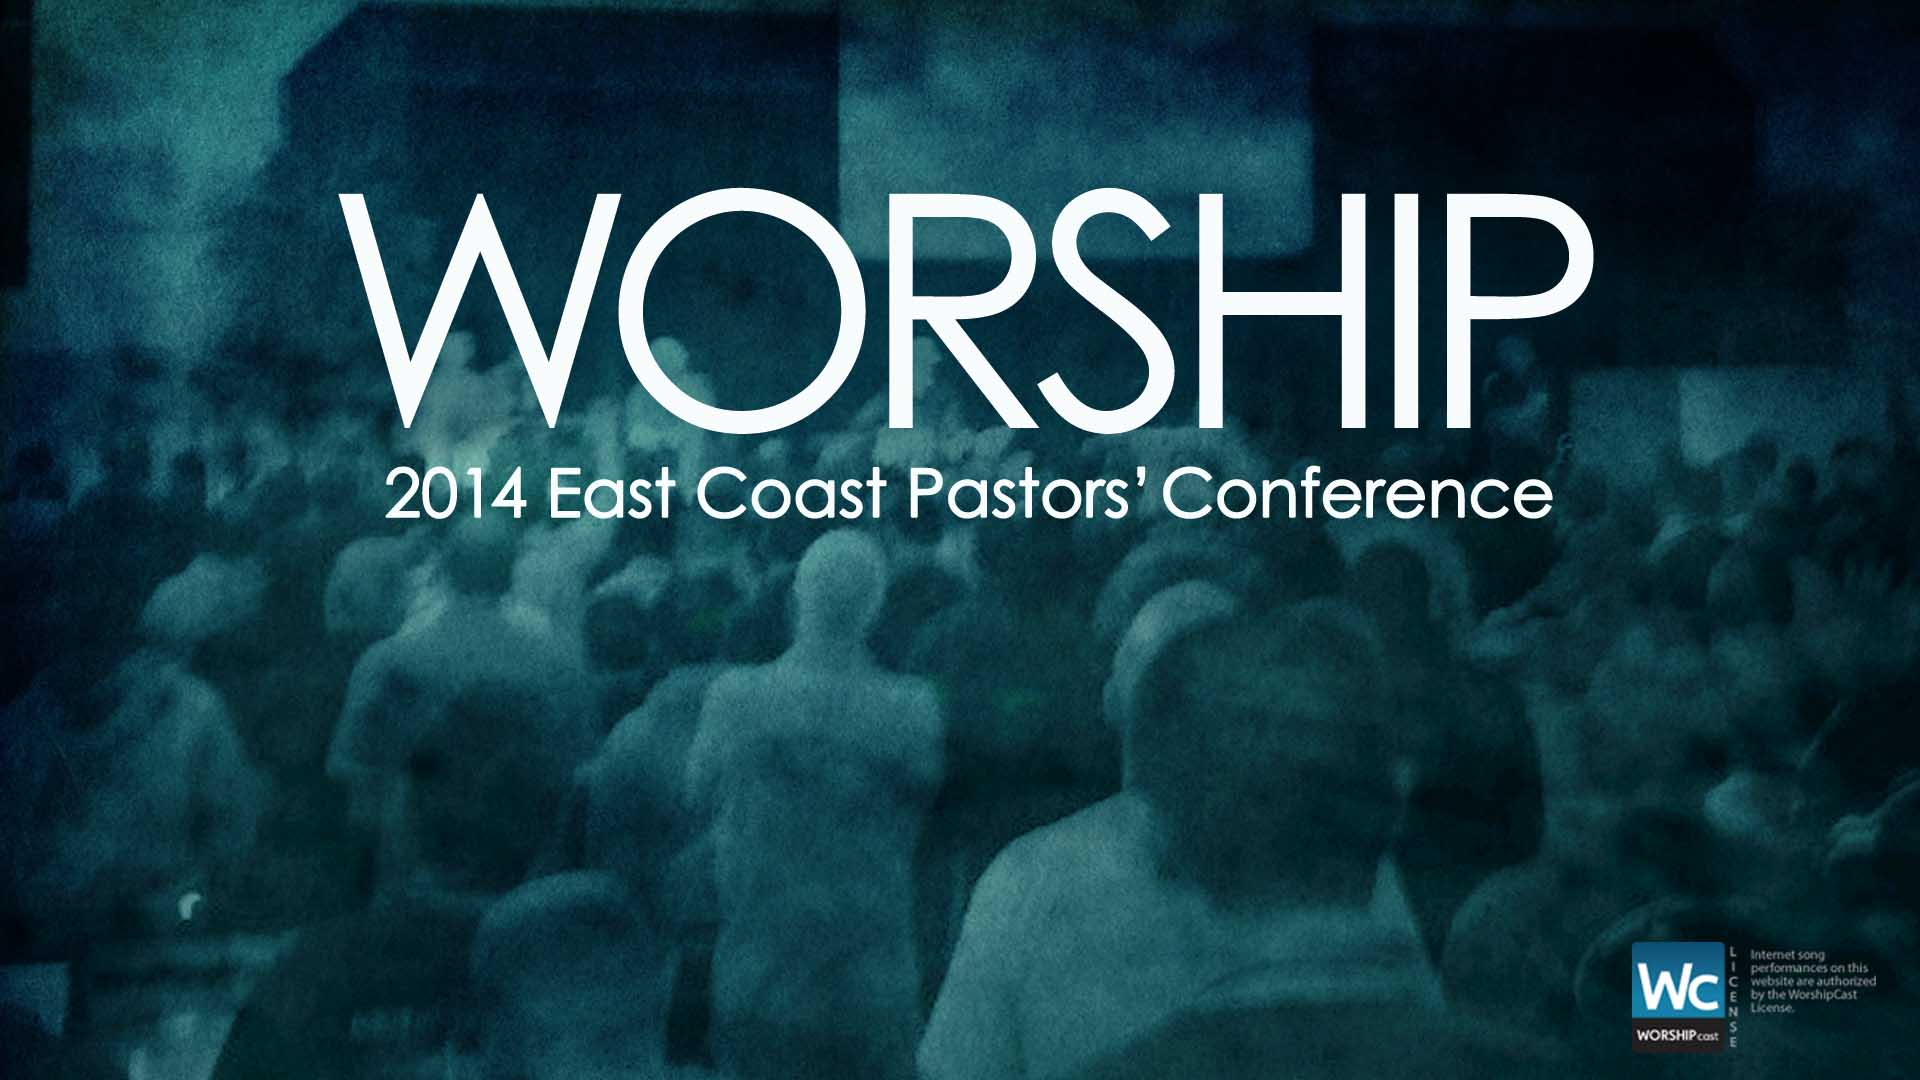 2014 East Coast Pastor's Conference Live Worship